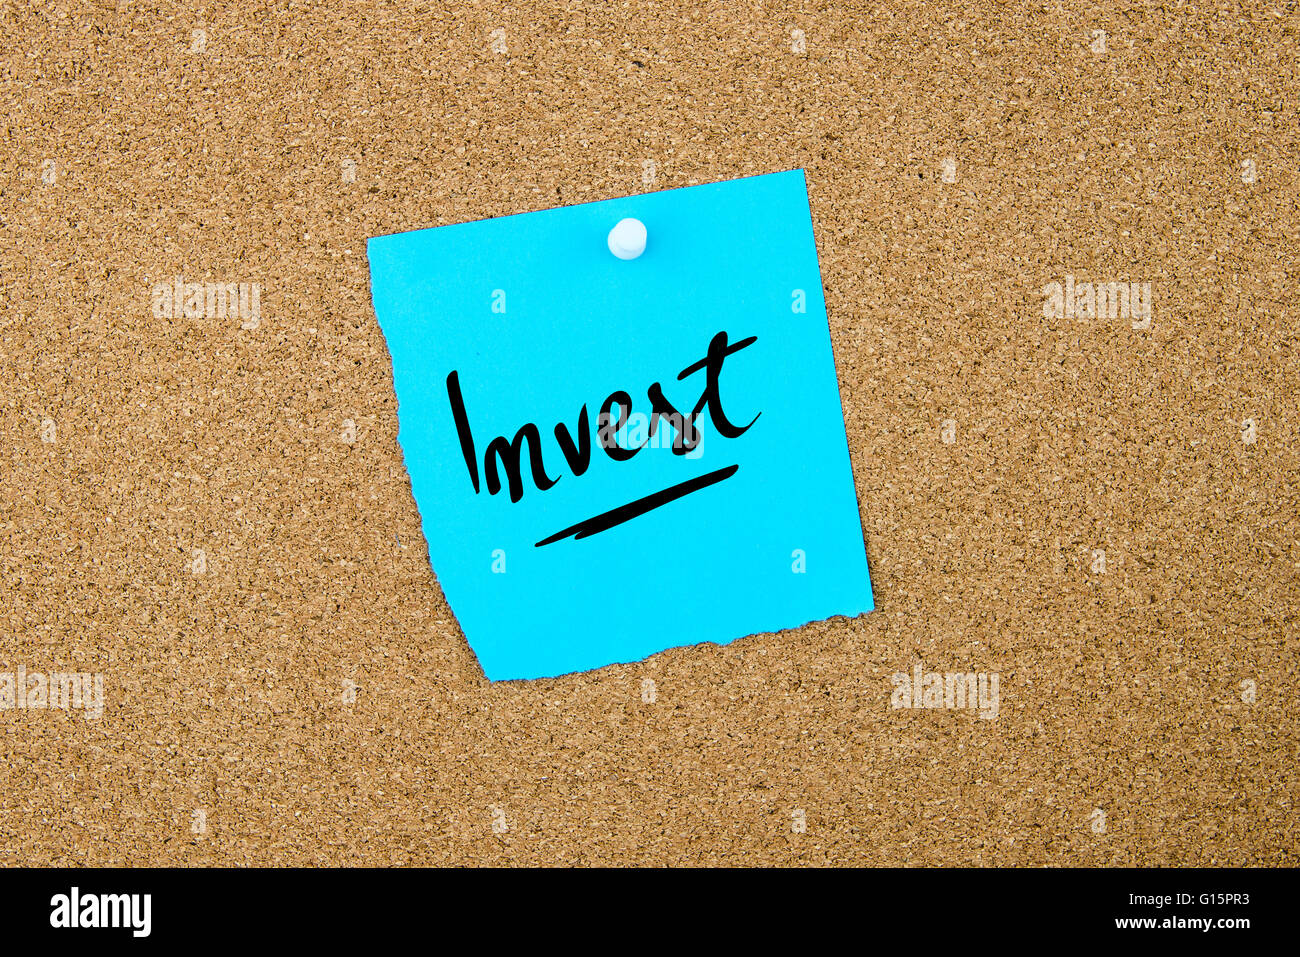 Invest written on blue paper note pinned on cork board with white thumbtacks, copy space available - Stock Image